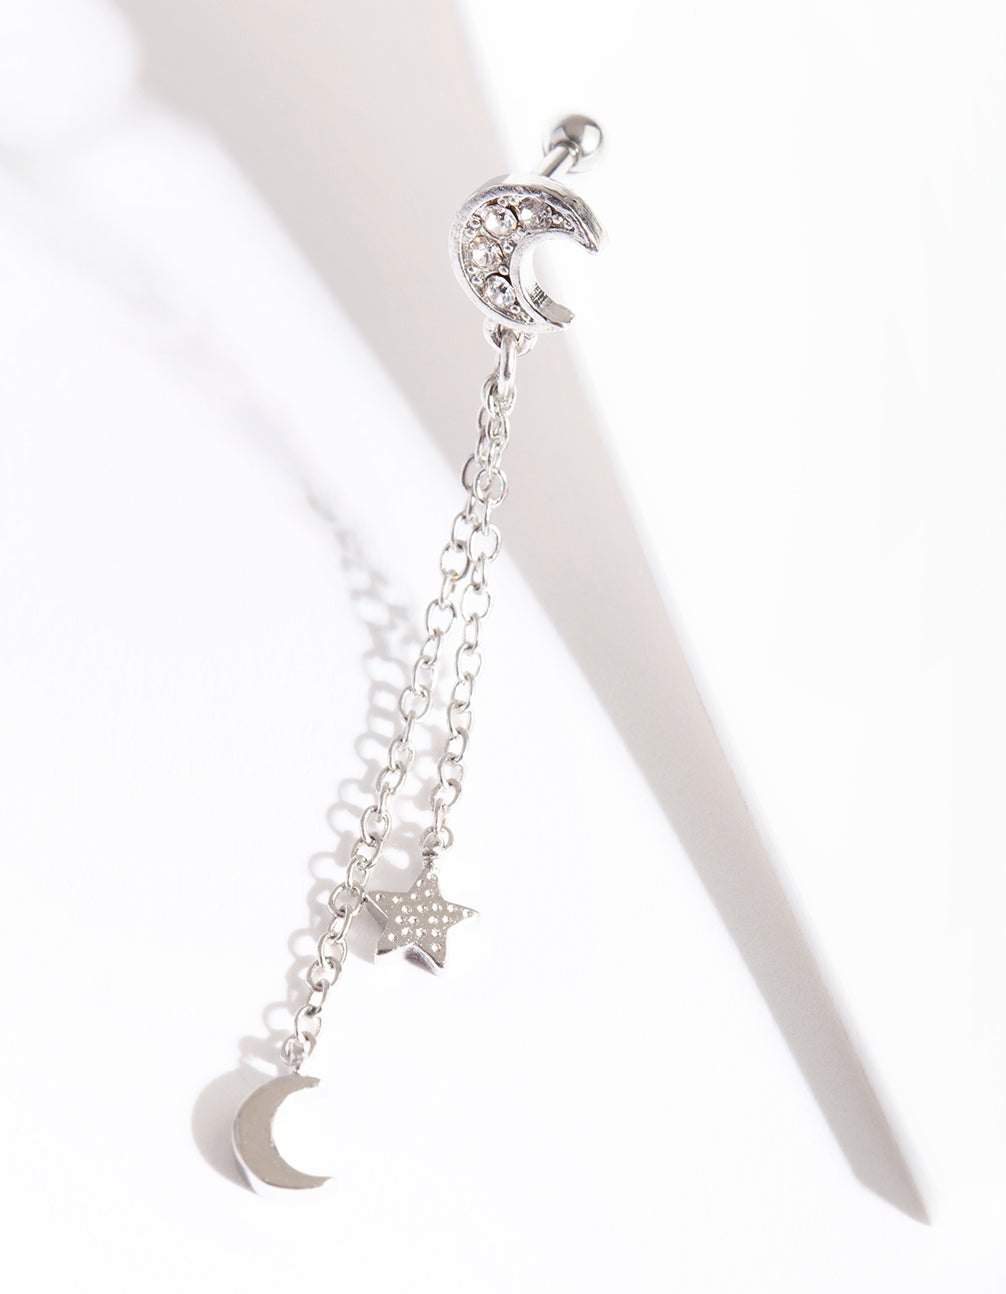 Rhodium Surgical Steel Celestial Chain Drop Barbell Earring